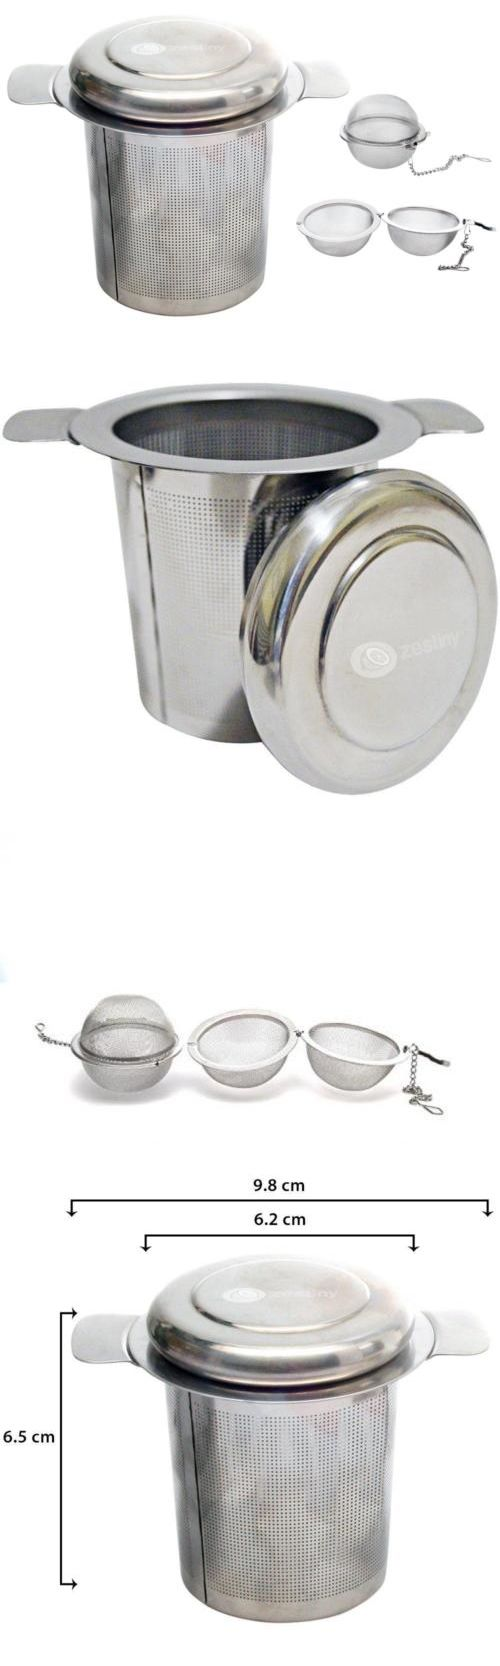 Kitchen sink stainless steel double drainer single bowl in vic ebay - Tea Infusers 177754 Tea Infuser Set 1 X Stainless Steel Strainer And 2 Mesh Ball